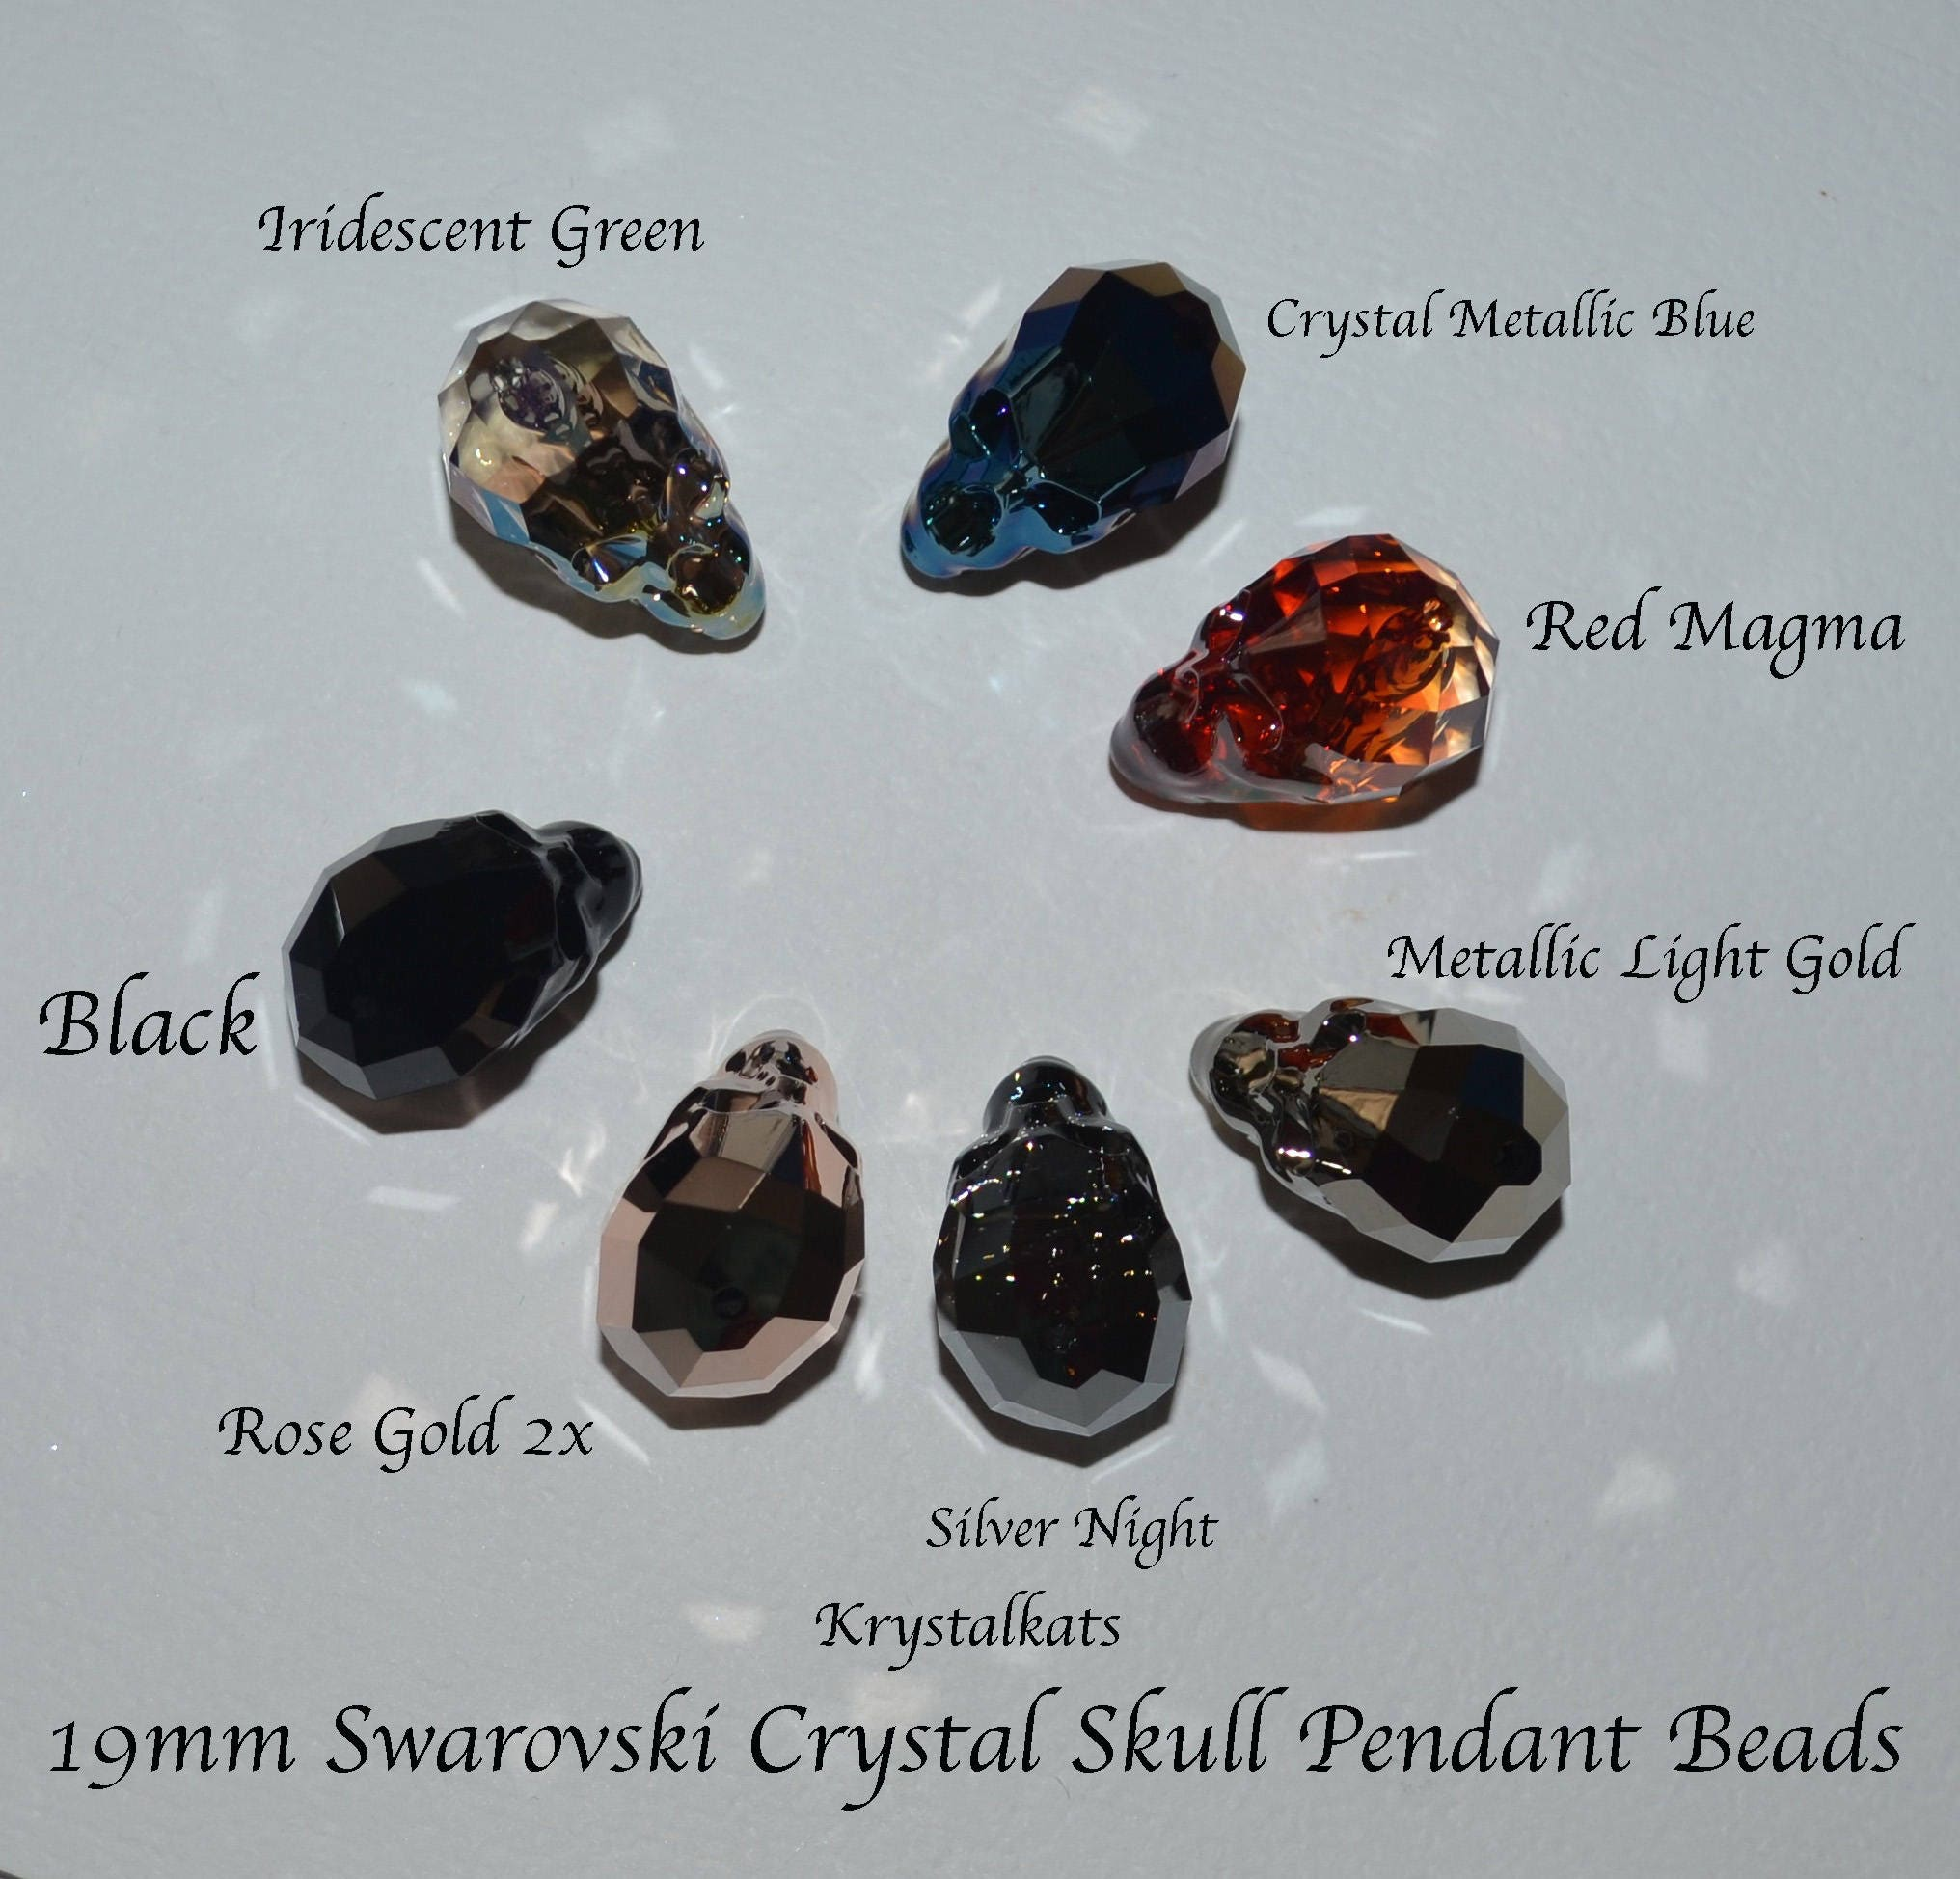 crystal colours available many falls made at crystals fenelon jewellery beads store swarovski and myka wonderful so bling pin with the prettiest in from kawartha